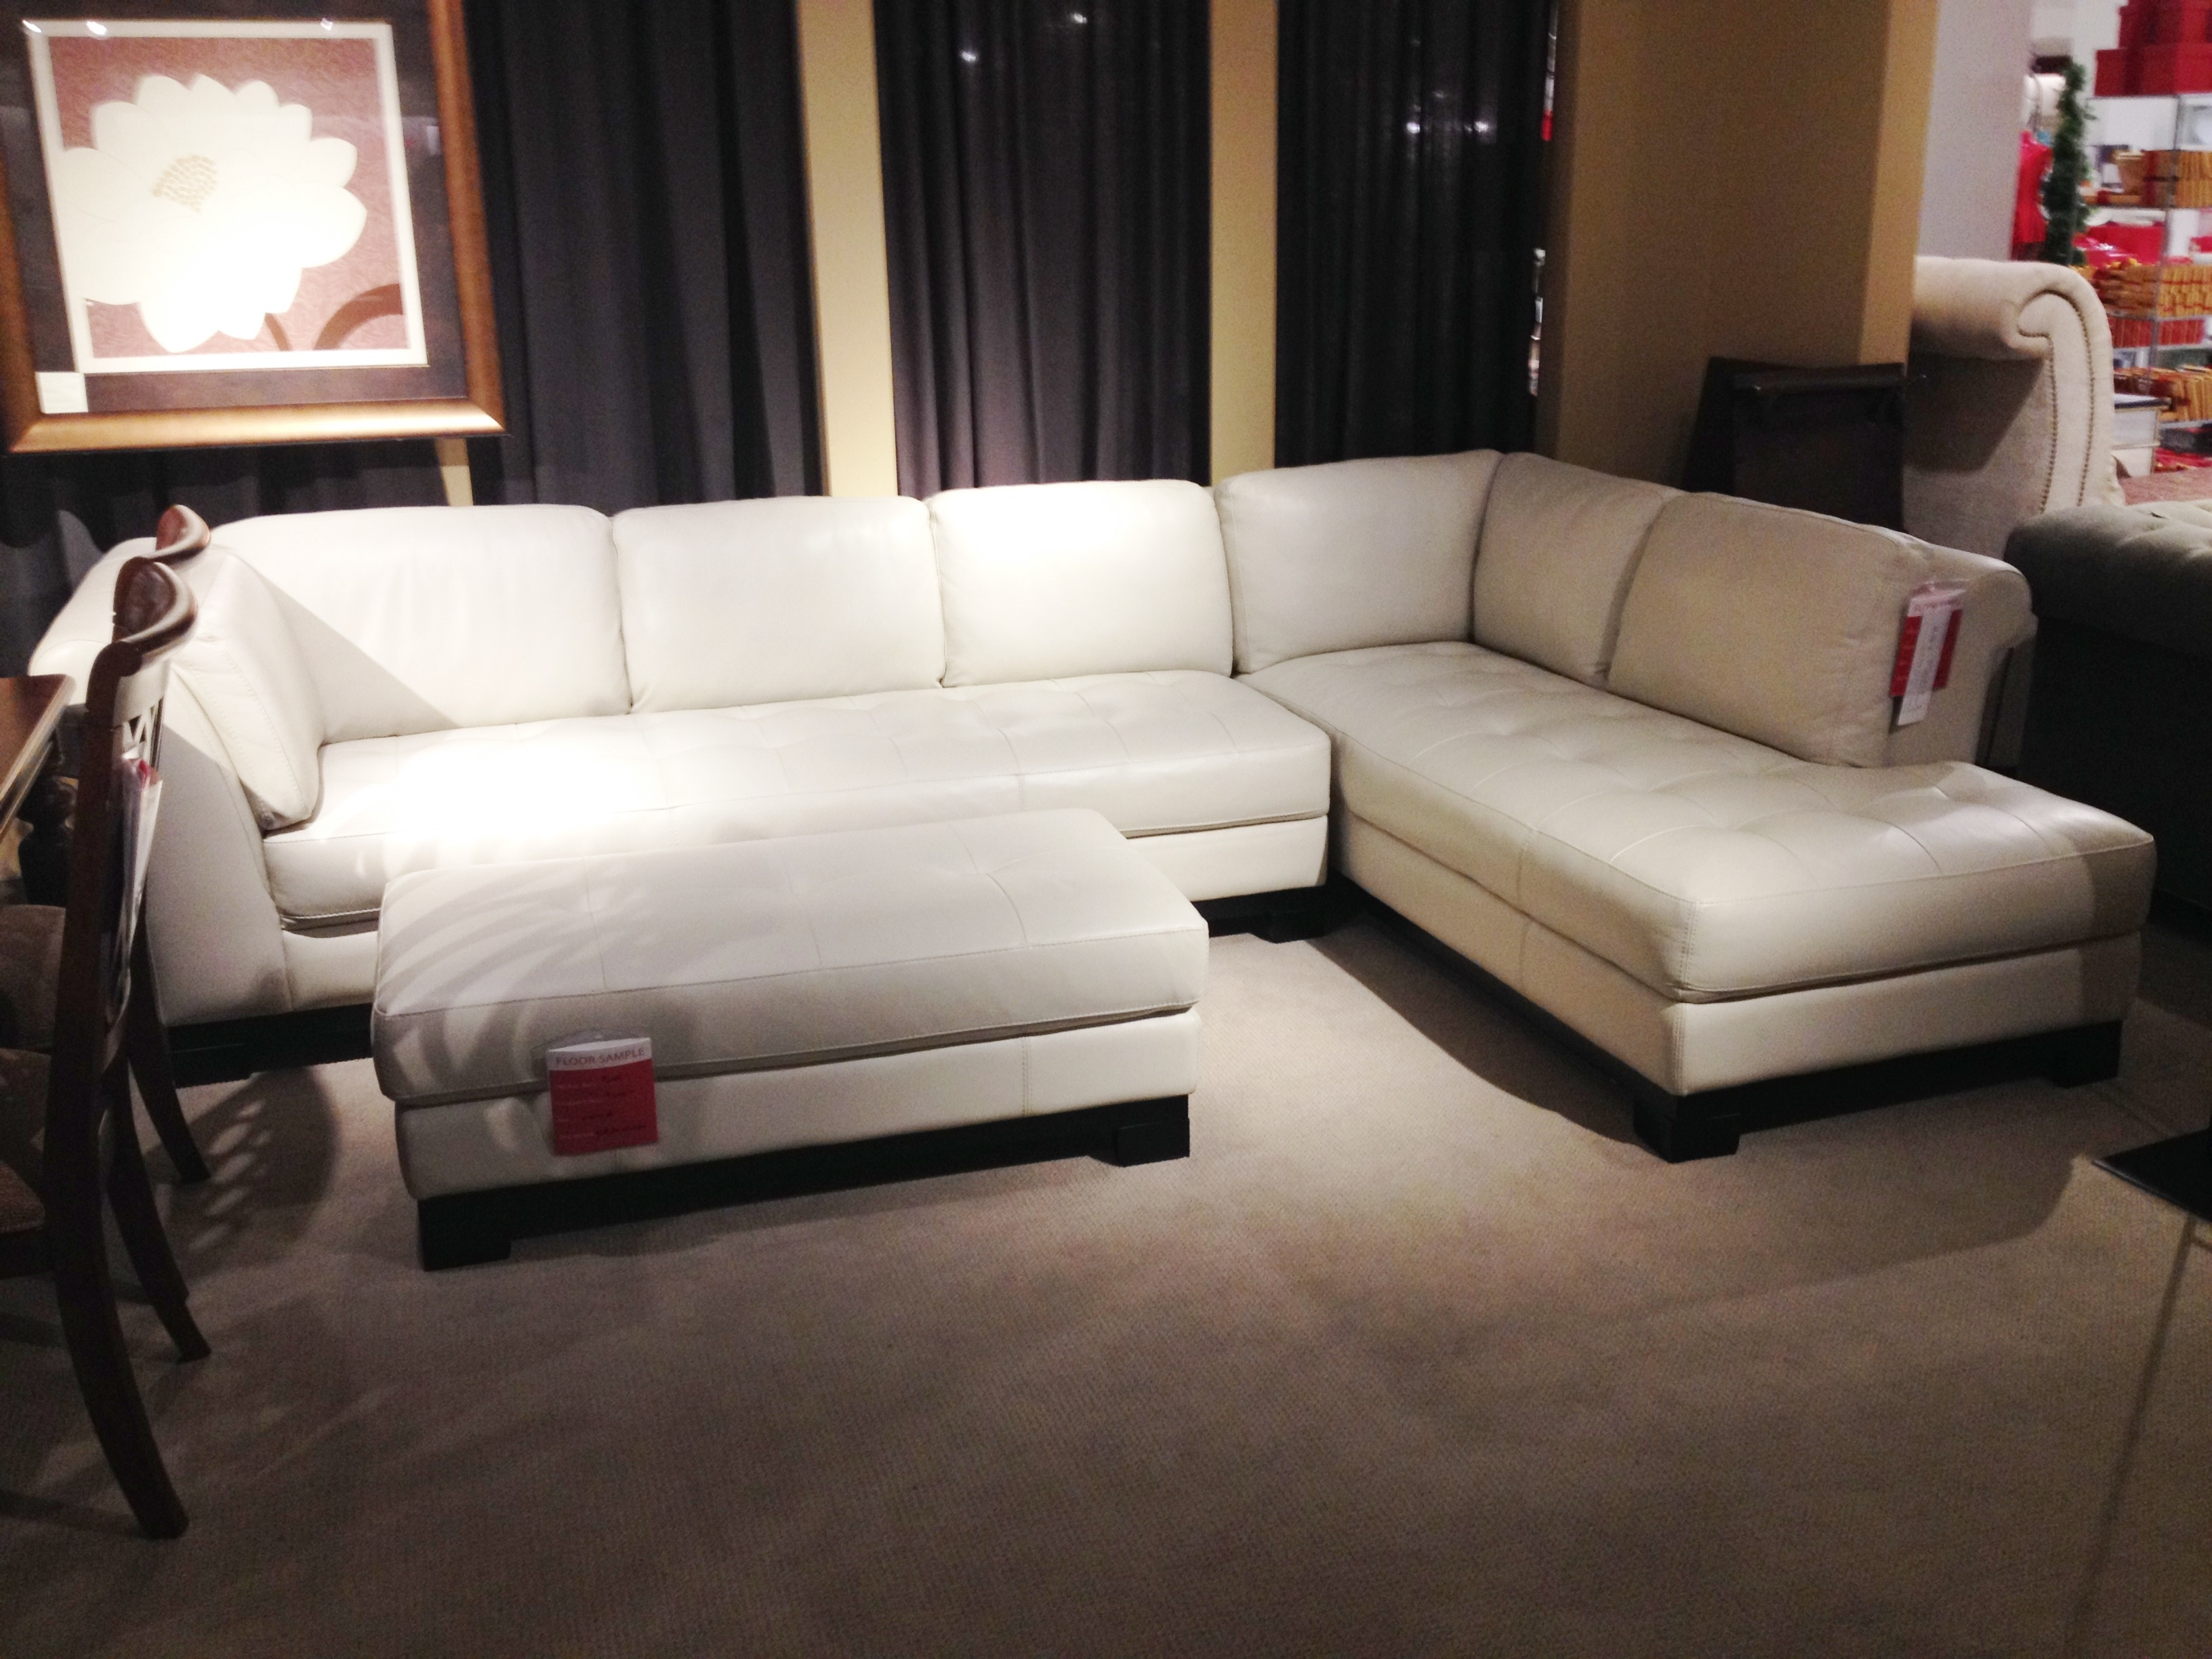 Sectional Sofa Design: Value City Sectional Sofa Set Deals Furniture With Value City Sectional Sofas (View 4 of 10)